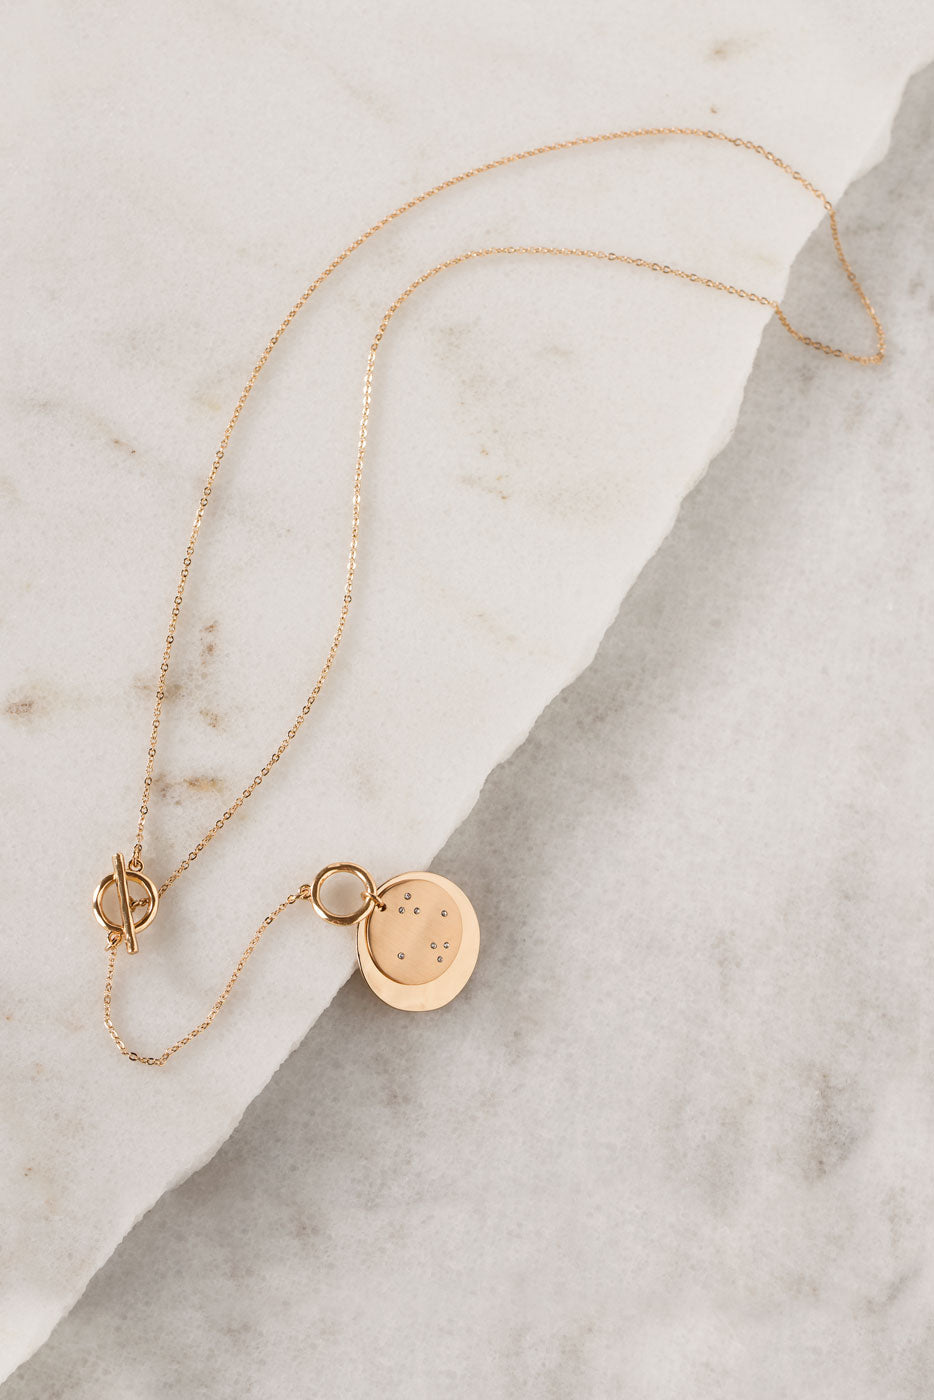 Full Moon Necklace | Shop Priceless